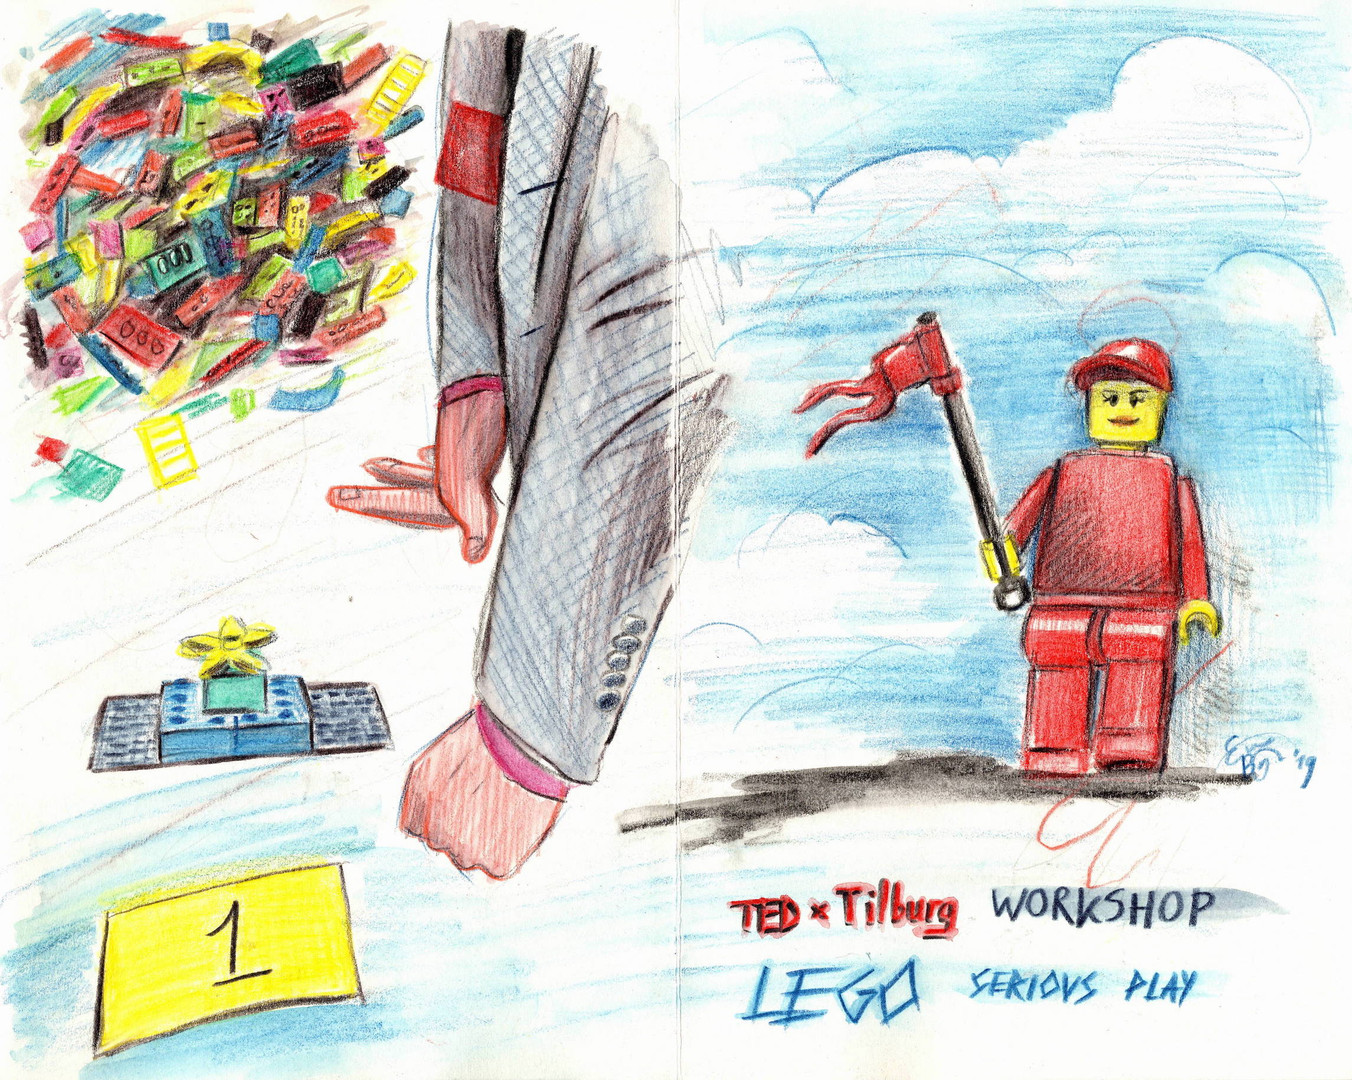 Workshop by Studio Why, TEDxTilburg (c) Emma Bijloos 2019